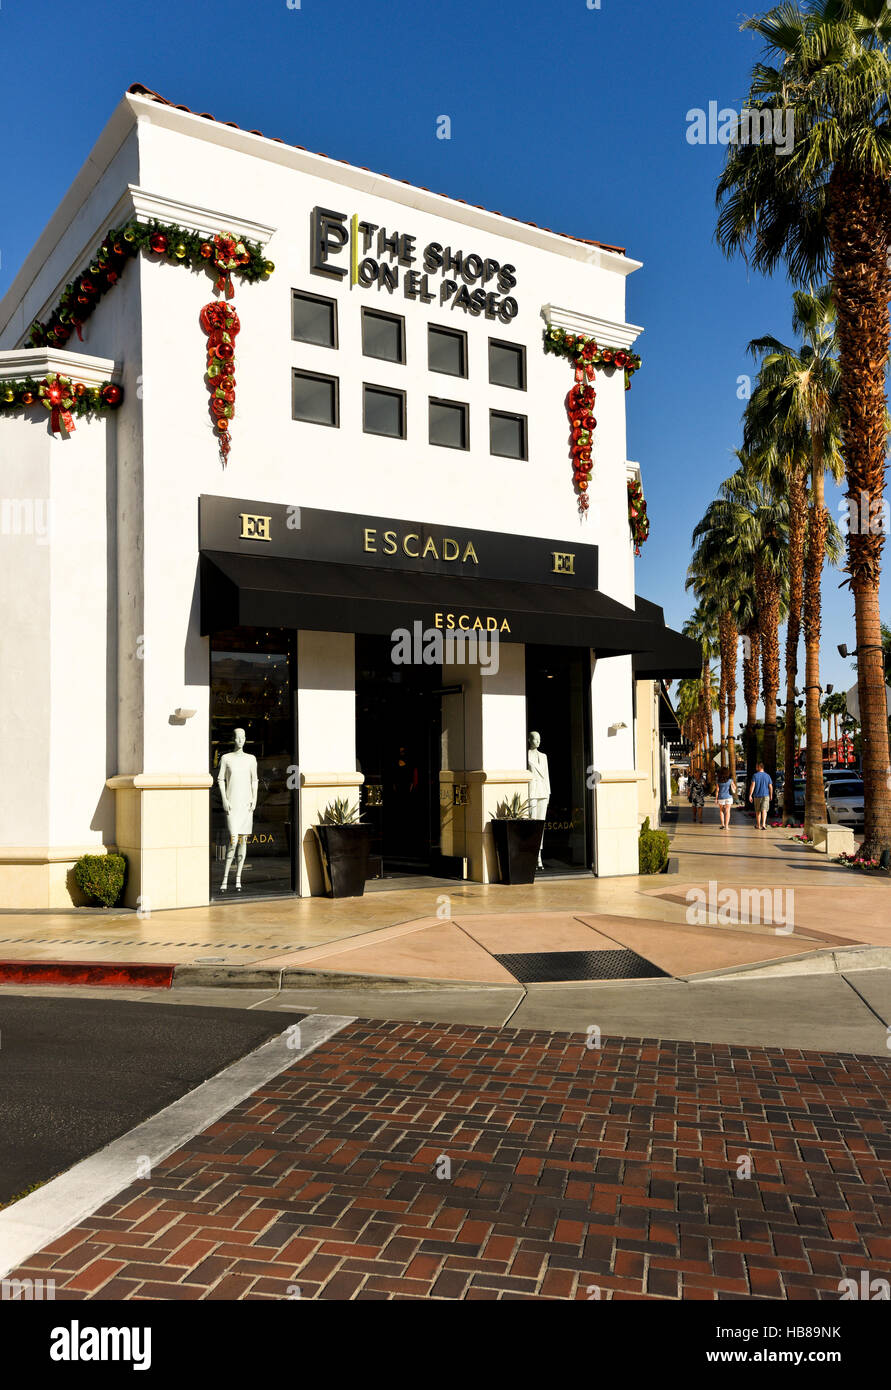 Escada an upscale store on El Paseo Drive in Palm Desert California - Stock Image